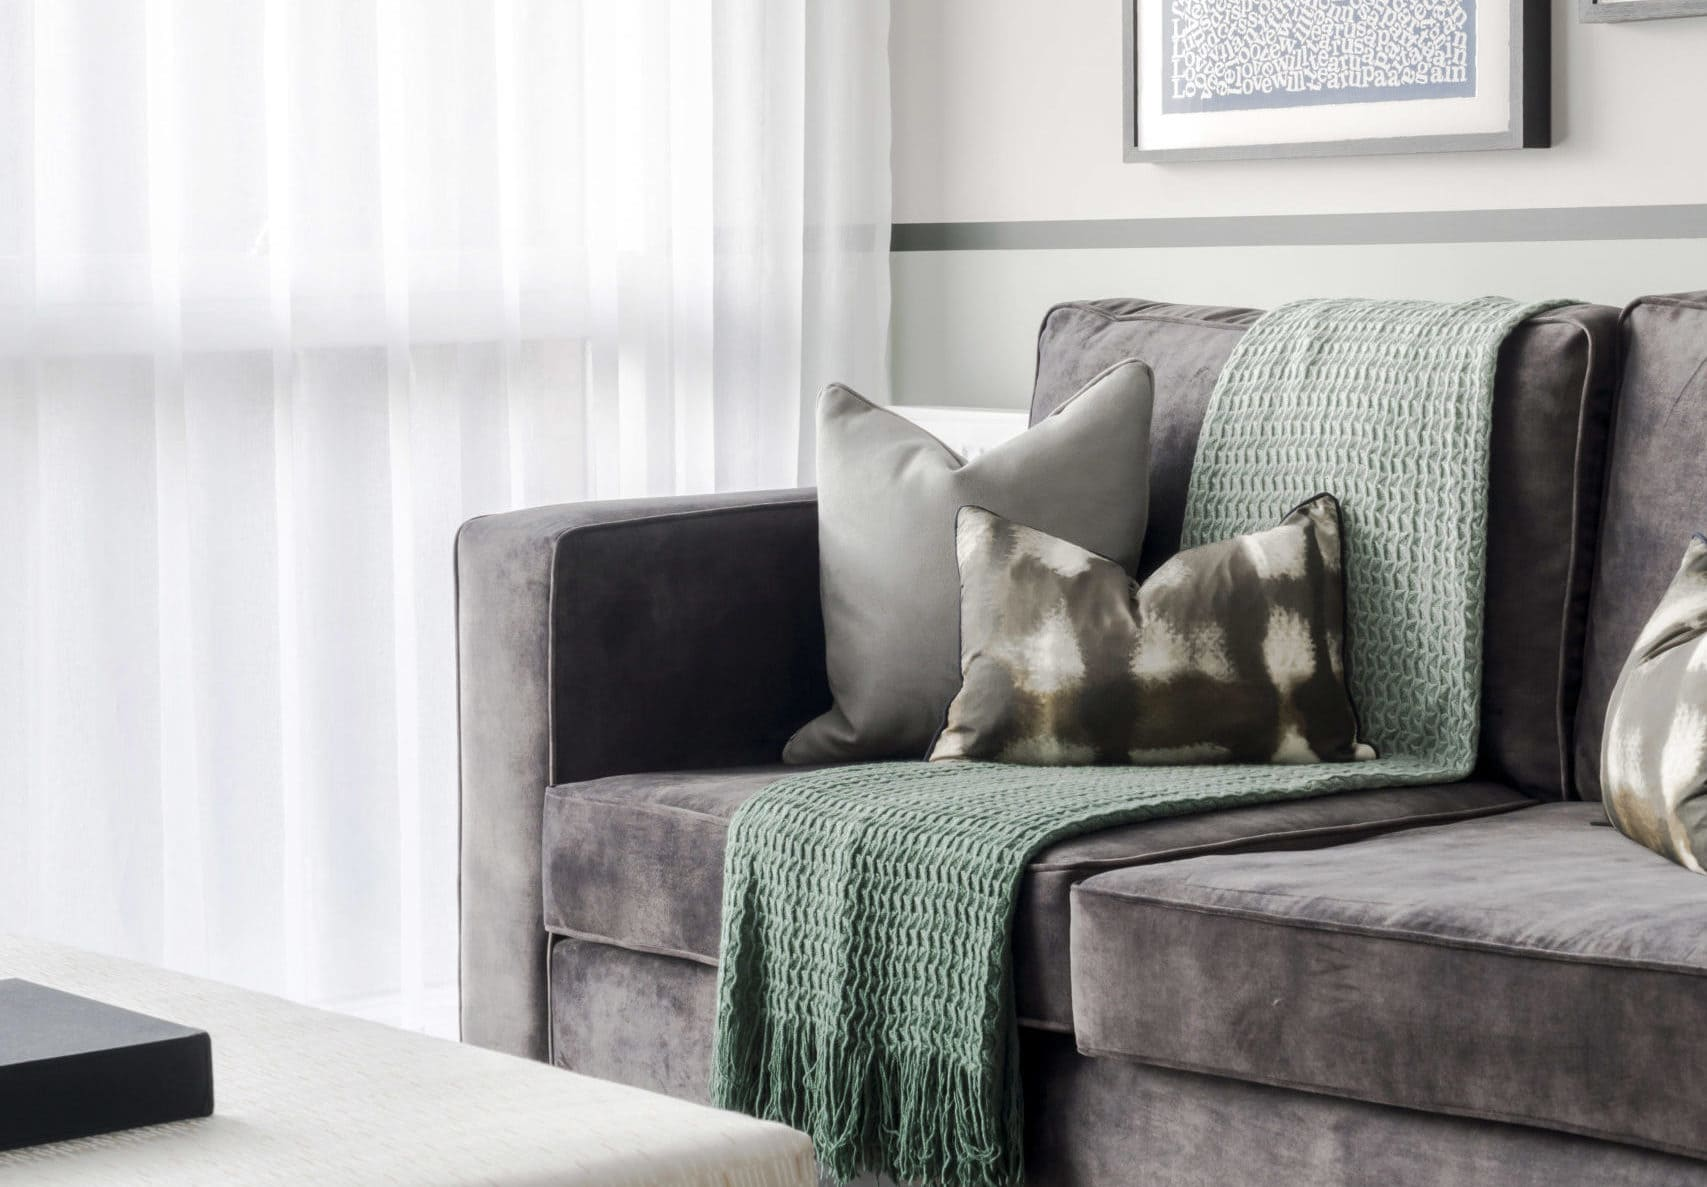 Seven interior design tips from INVESTA - how to decorate a new build Shared Ownership or Help to Buy home